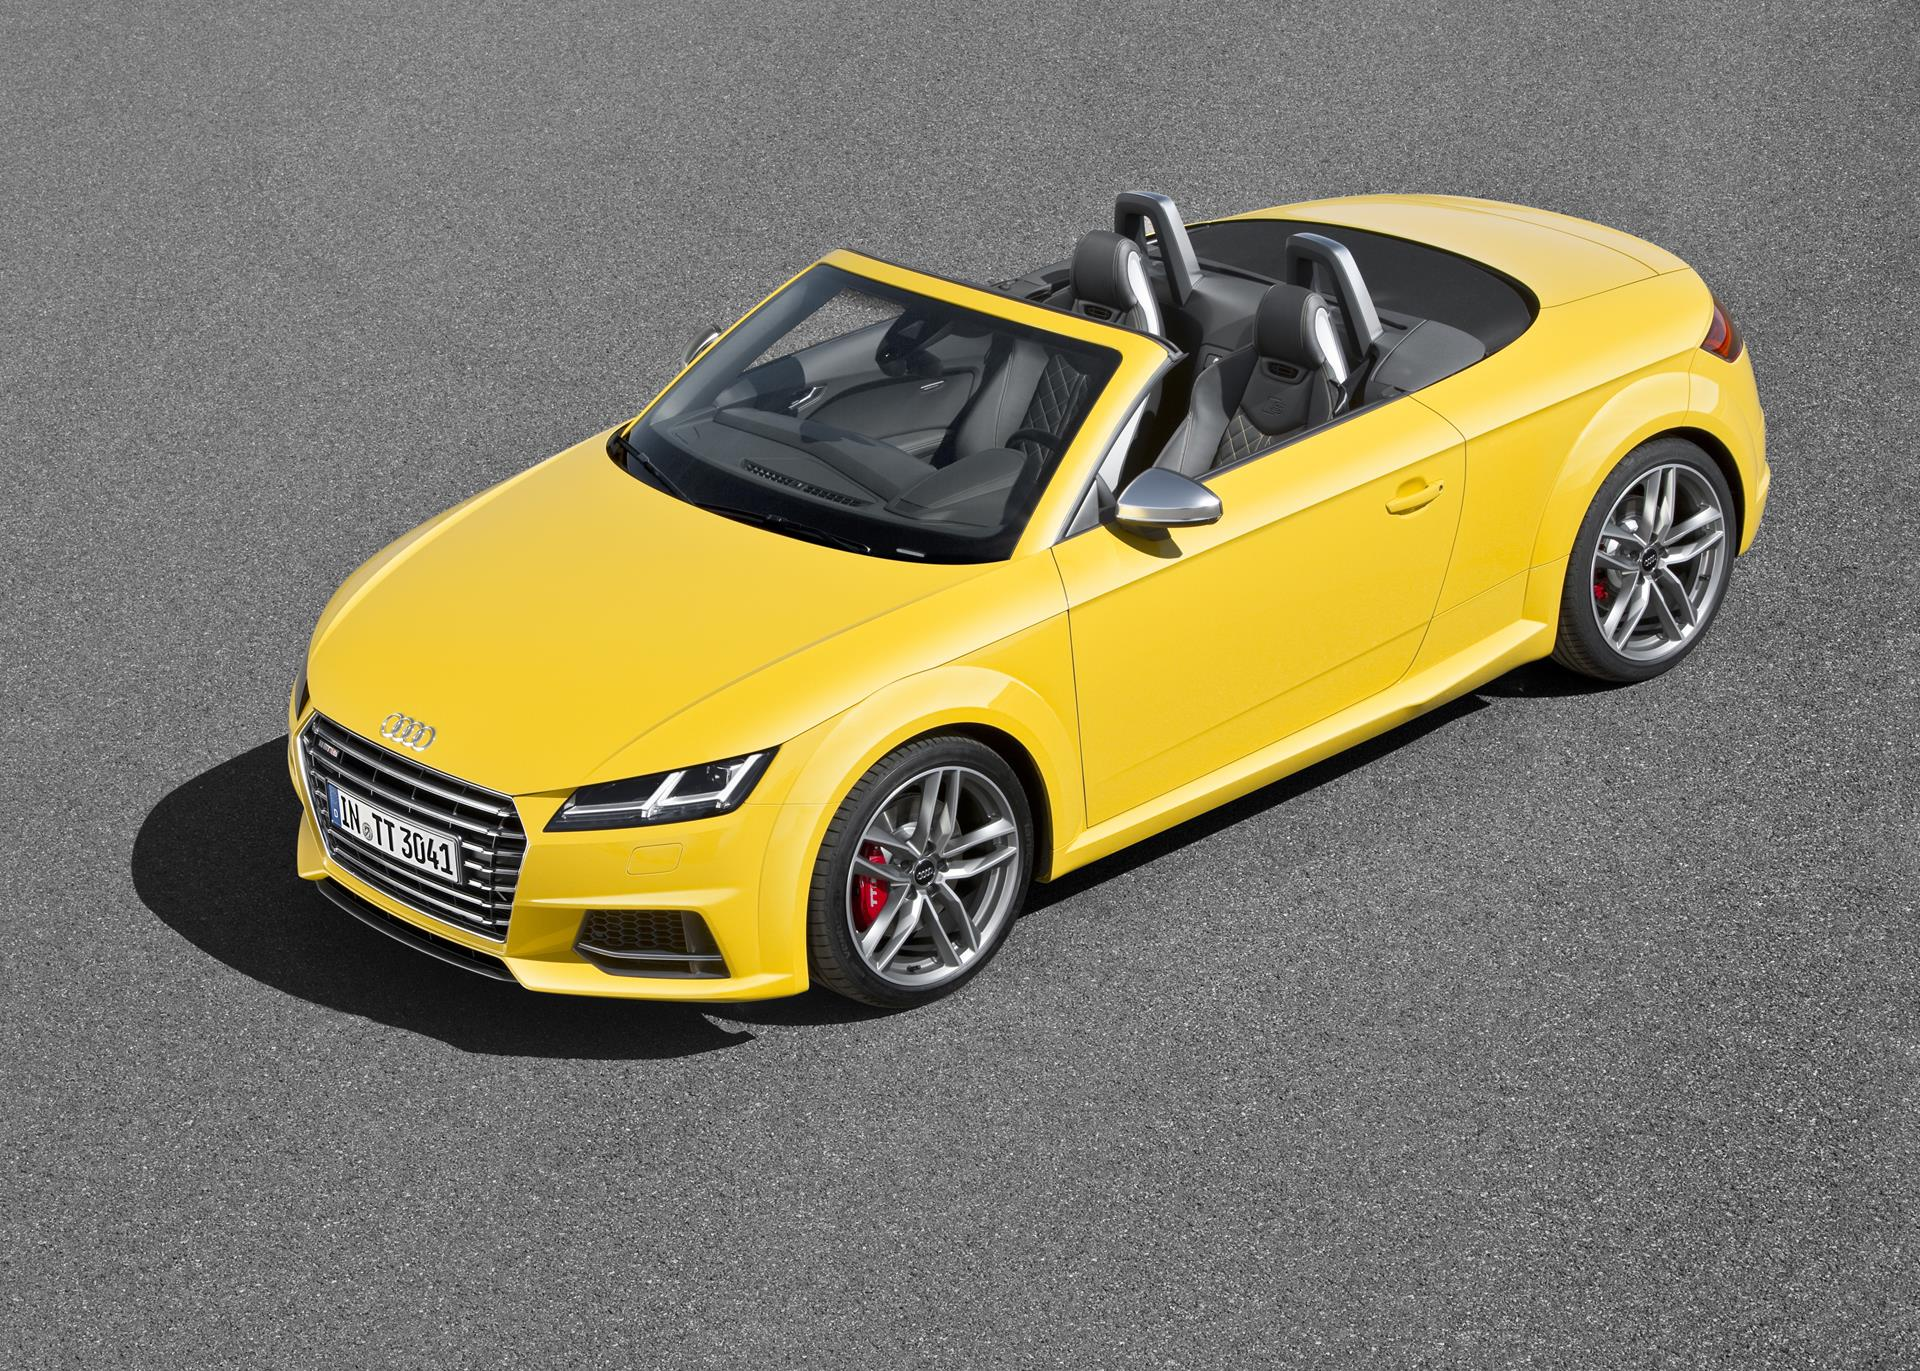 audi tt roadster (pq35,36) 2010 wallpaper #10